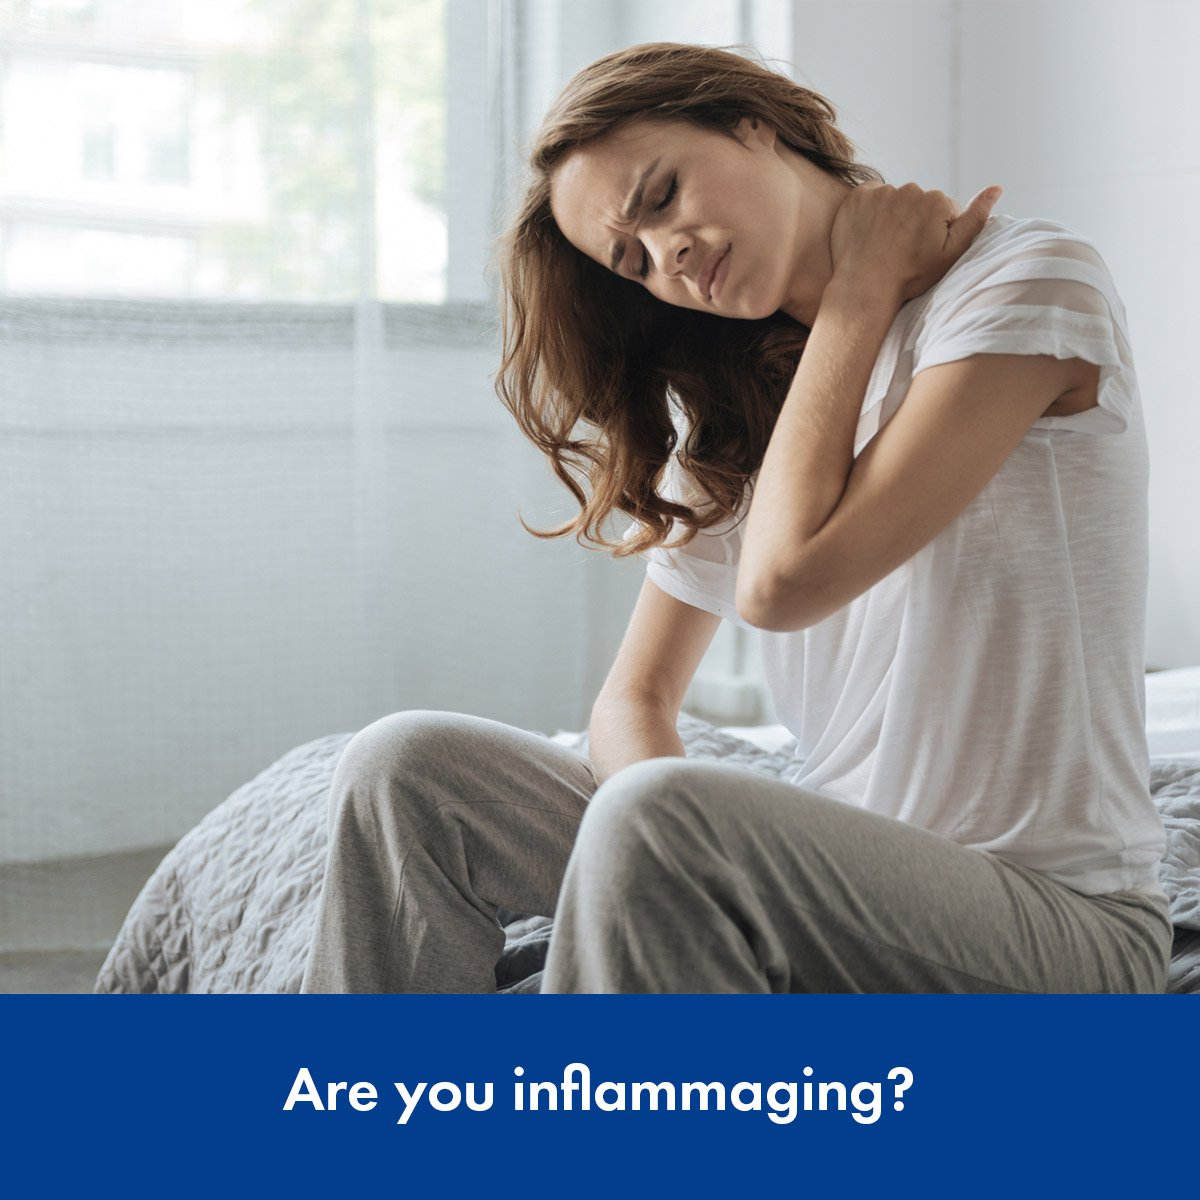 Are you inflammaging?